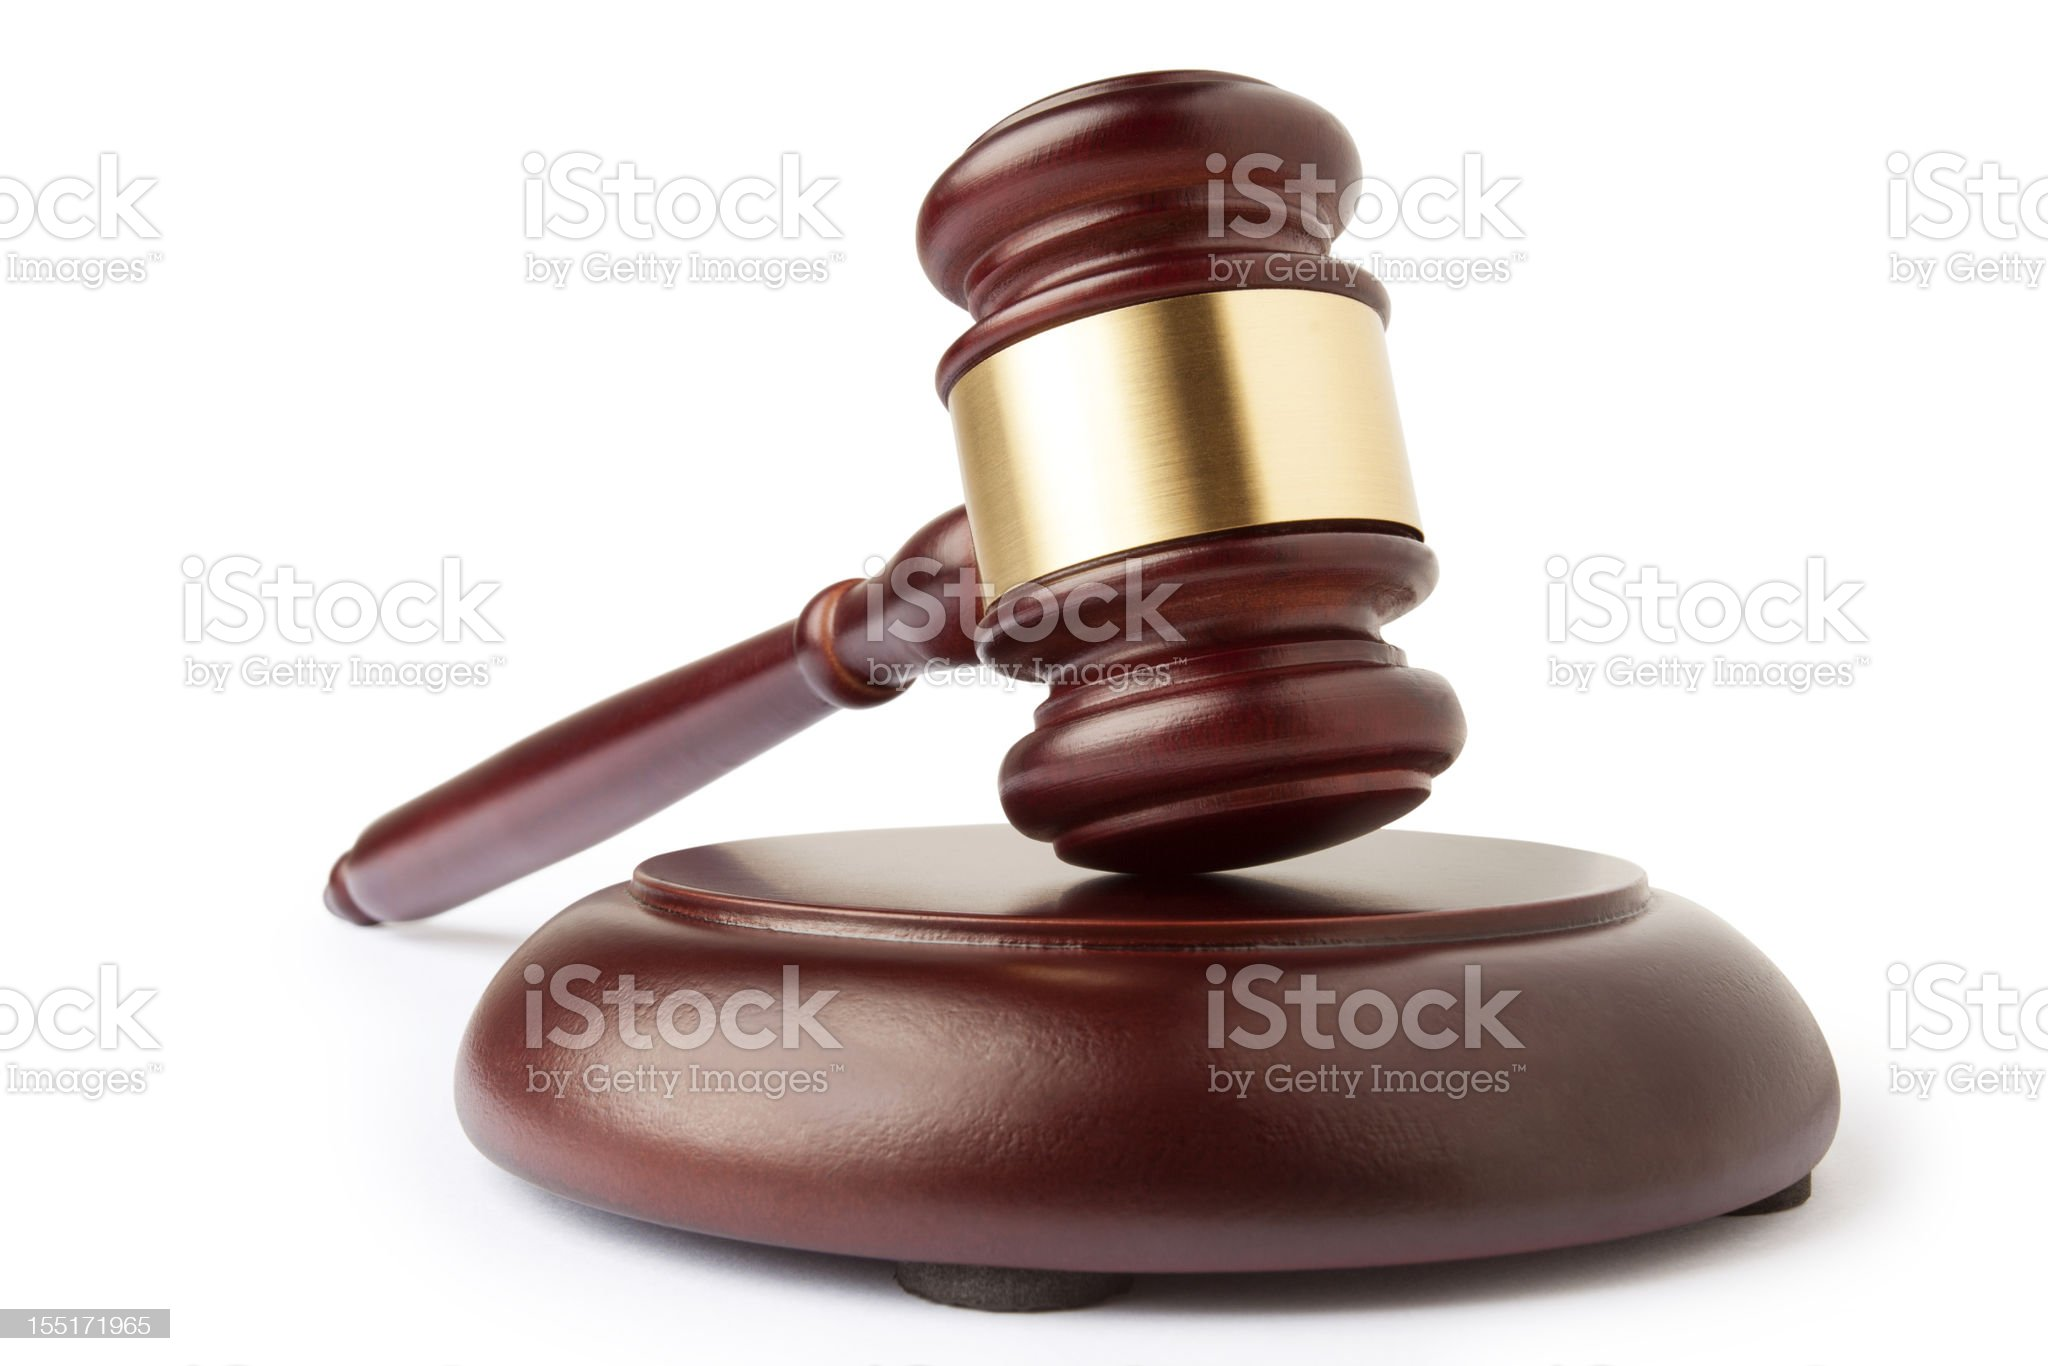 A judge's gavel and sound block set in wood royalty-free stock photo